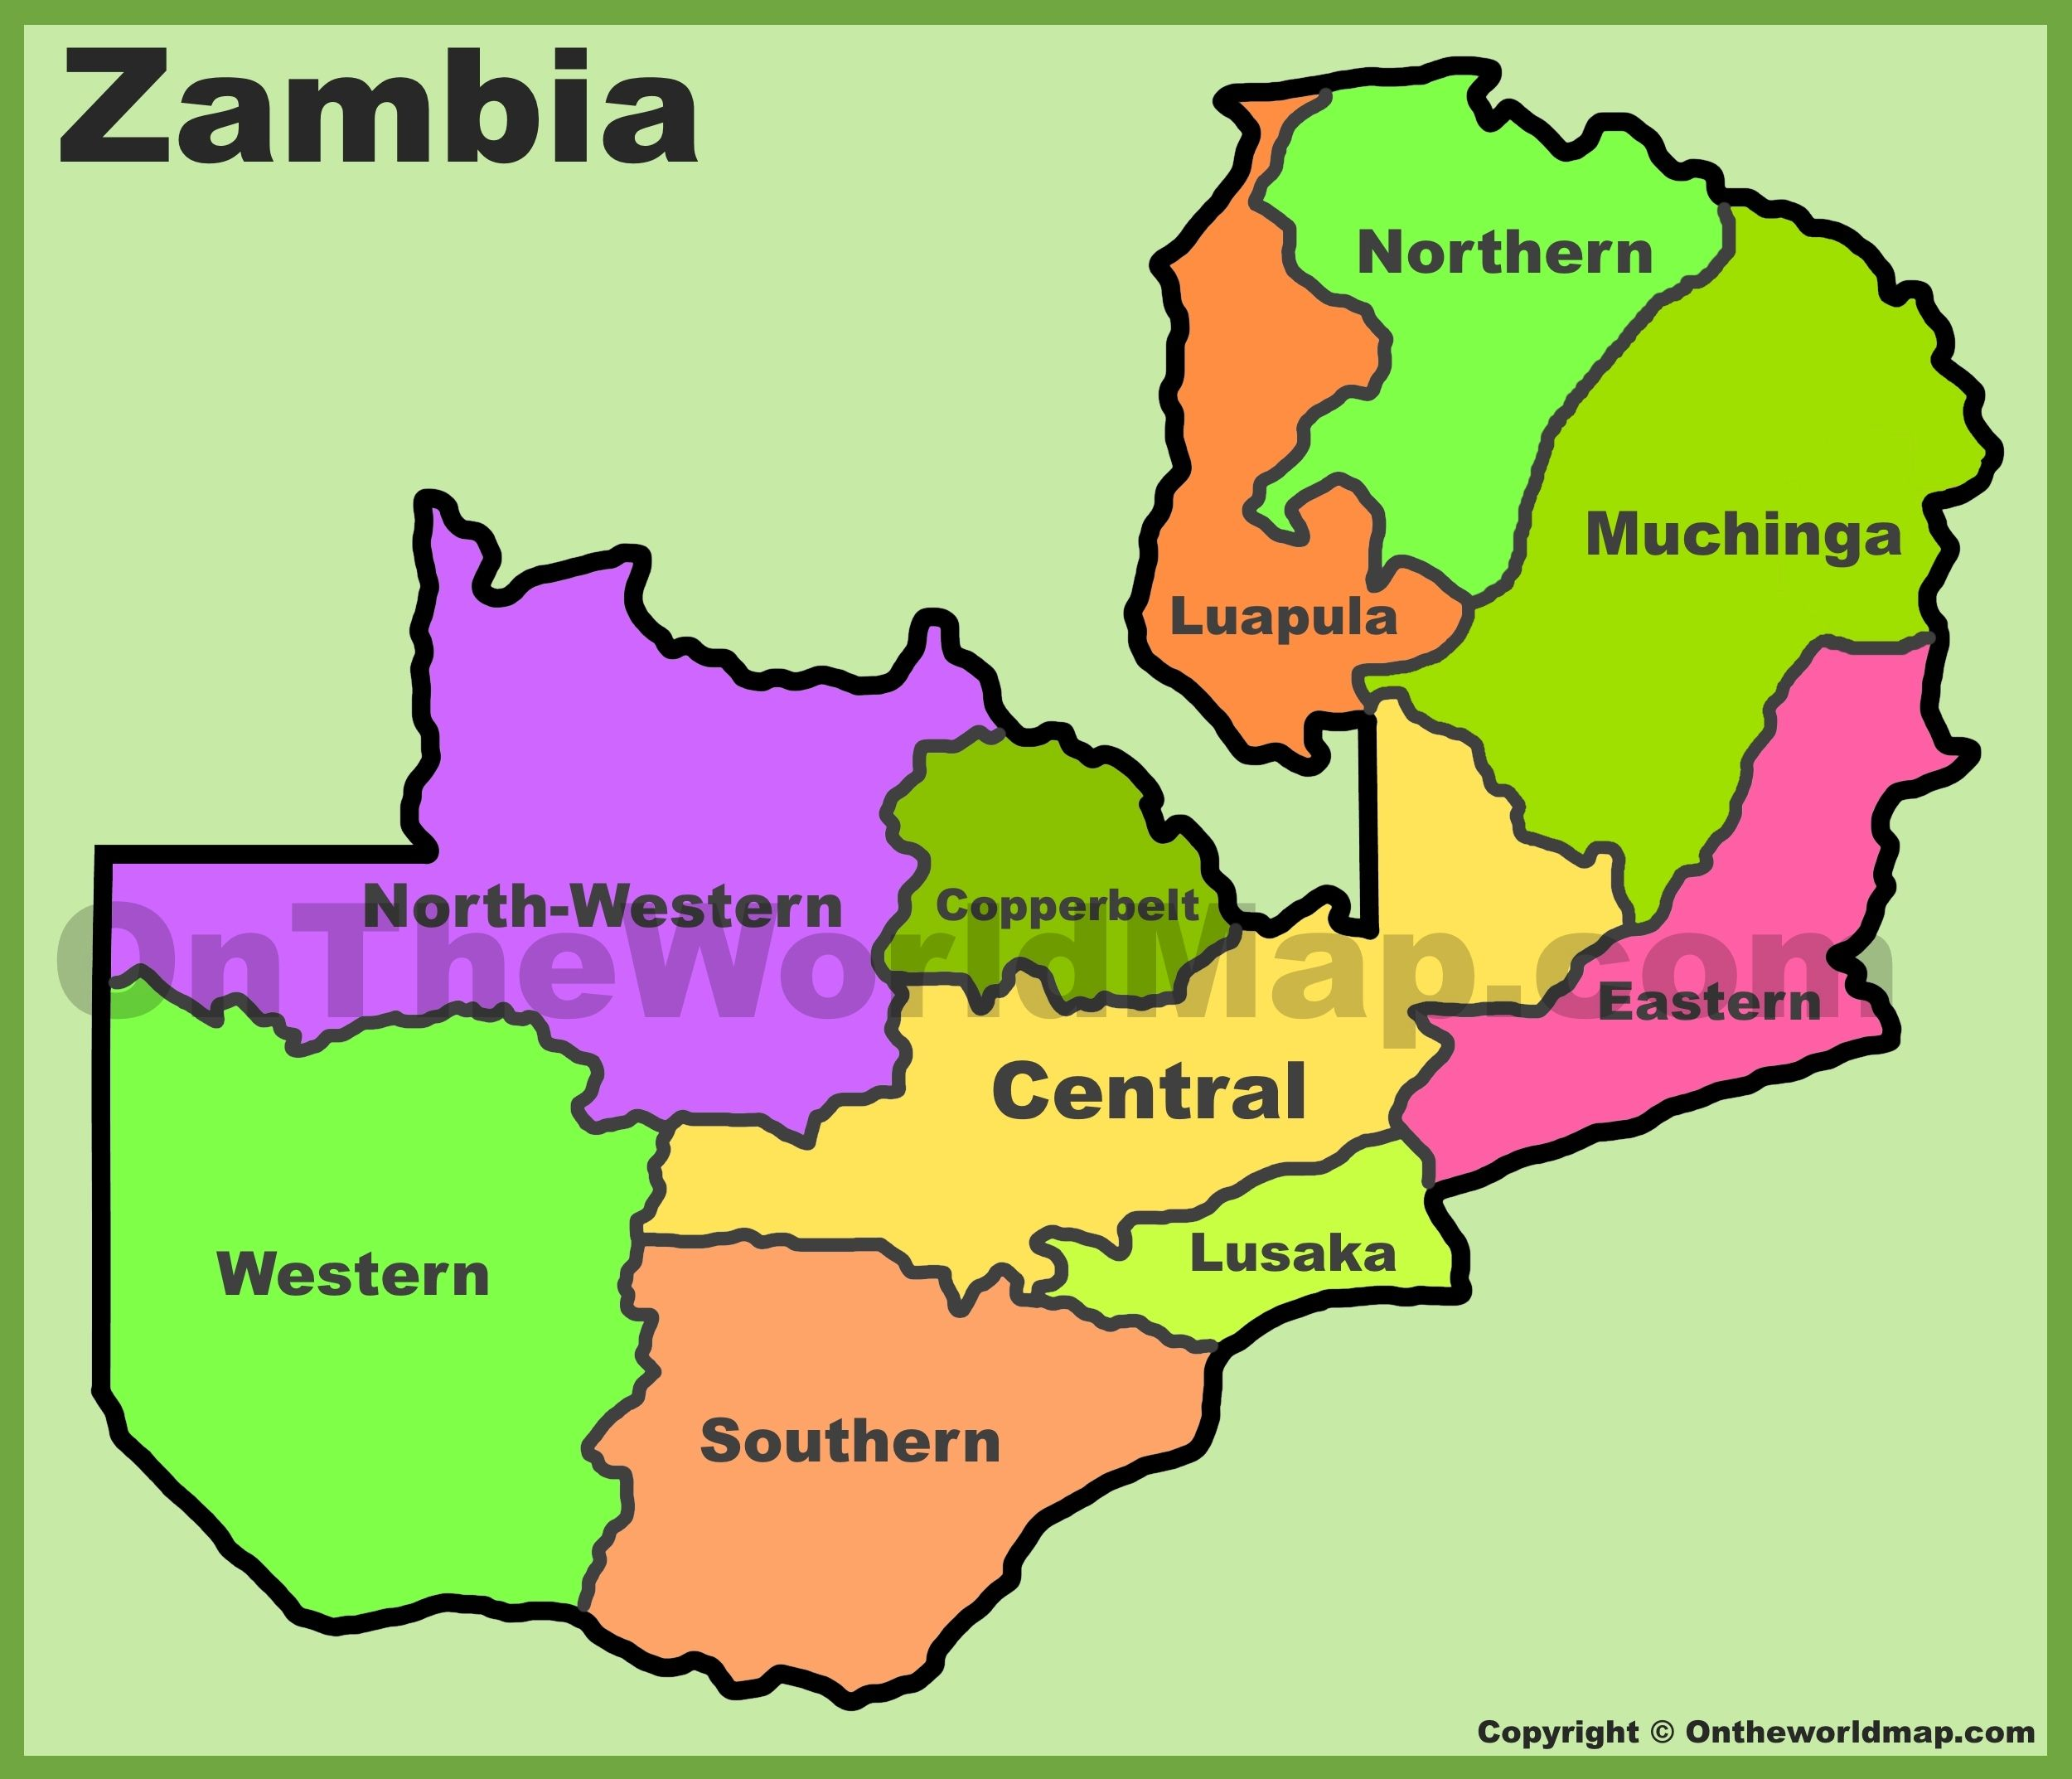 Zambia maps maps of zambia christ birthday offering zambia maps maps of zambia malvernweather Gallery